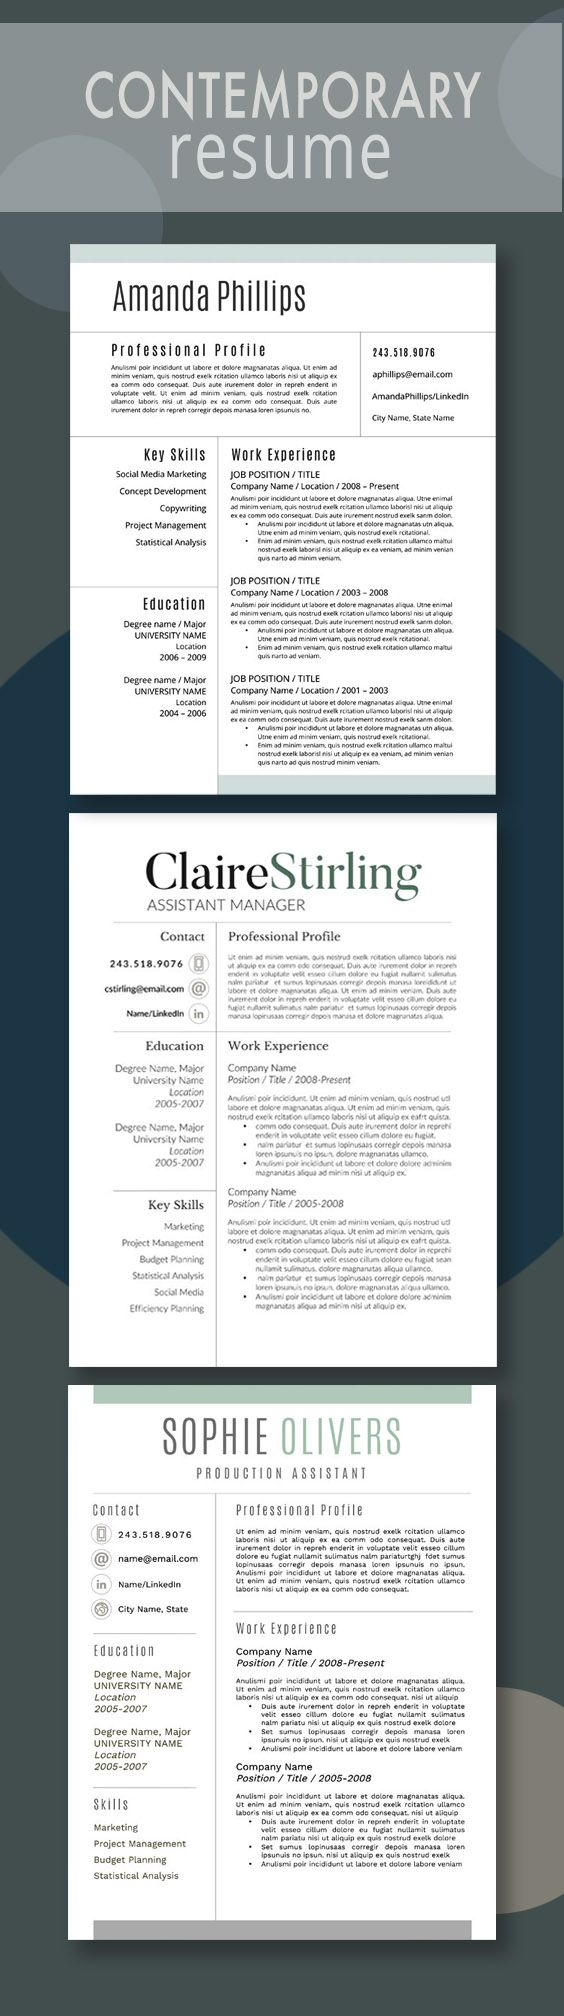 Functional Resume Template Microsoft%0A Contemporary Resumes from Resume Foundry